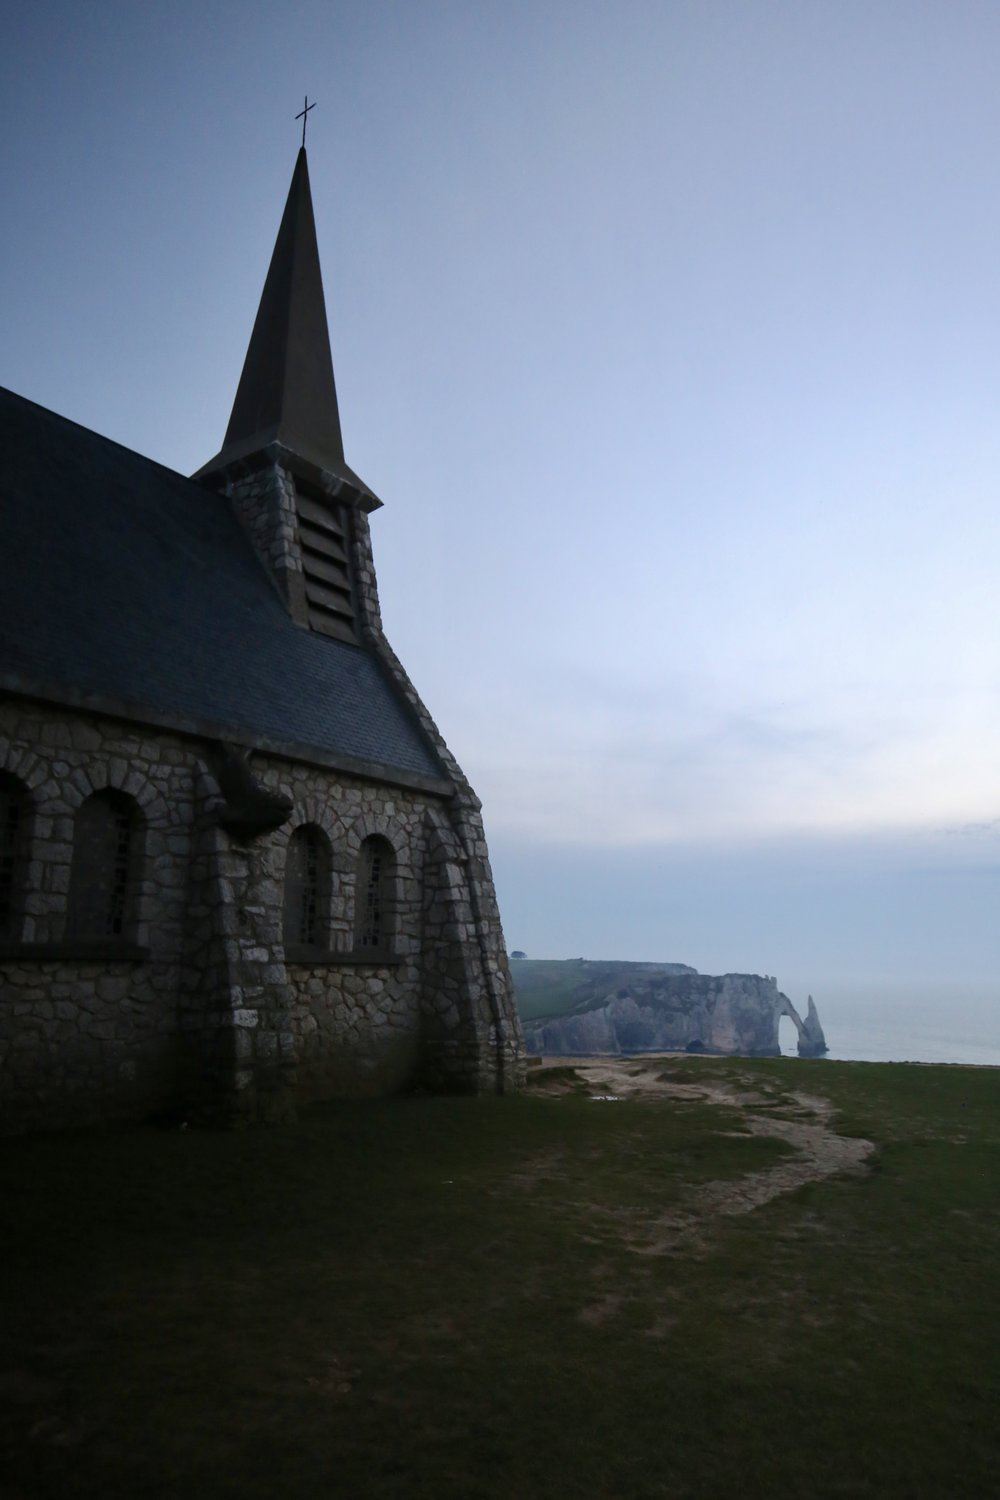 The church looking over the cliffs of Etretat at dusk.